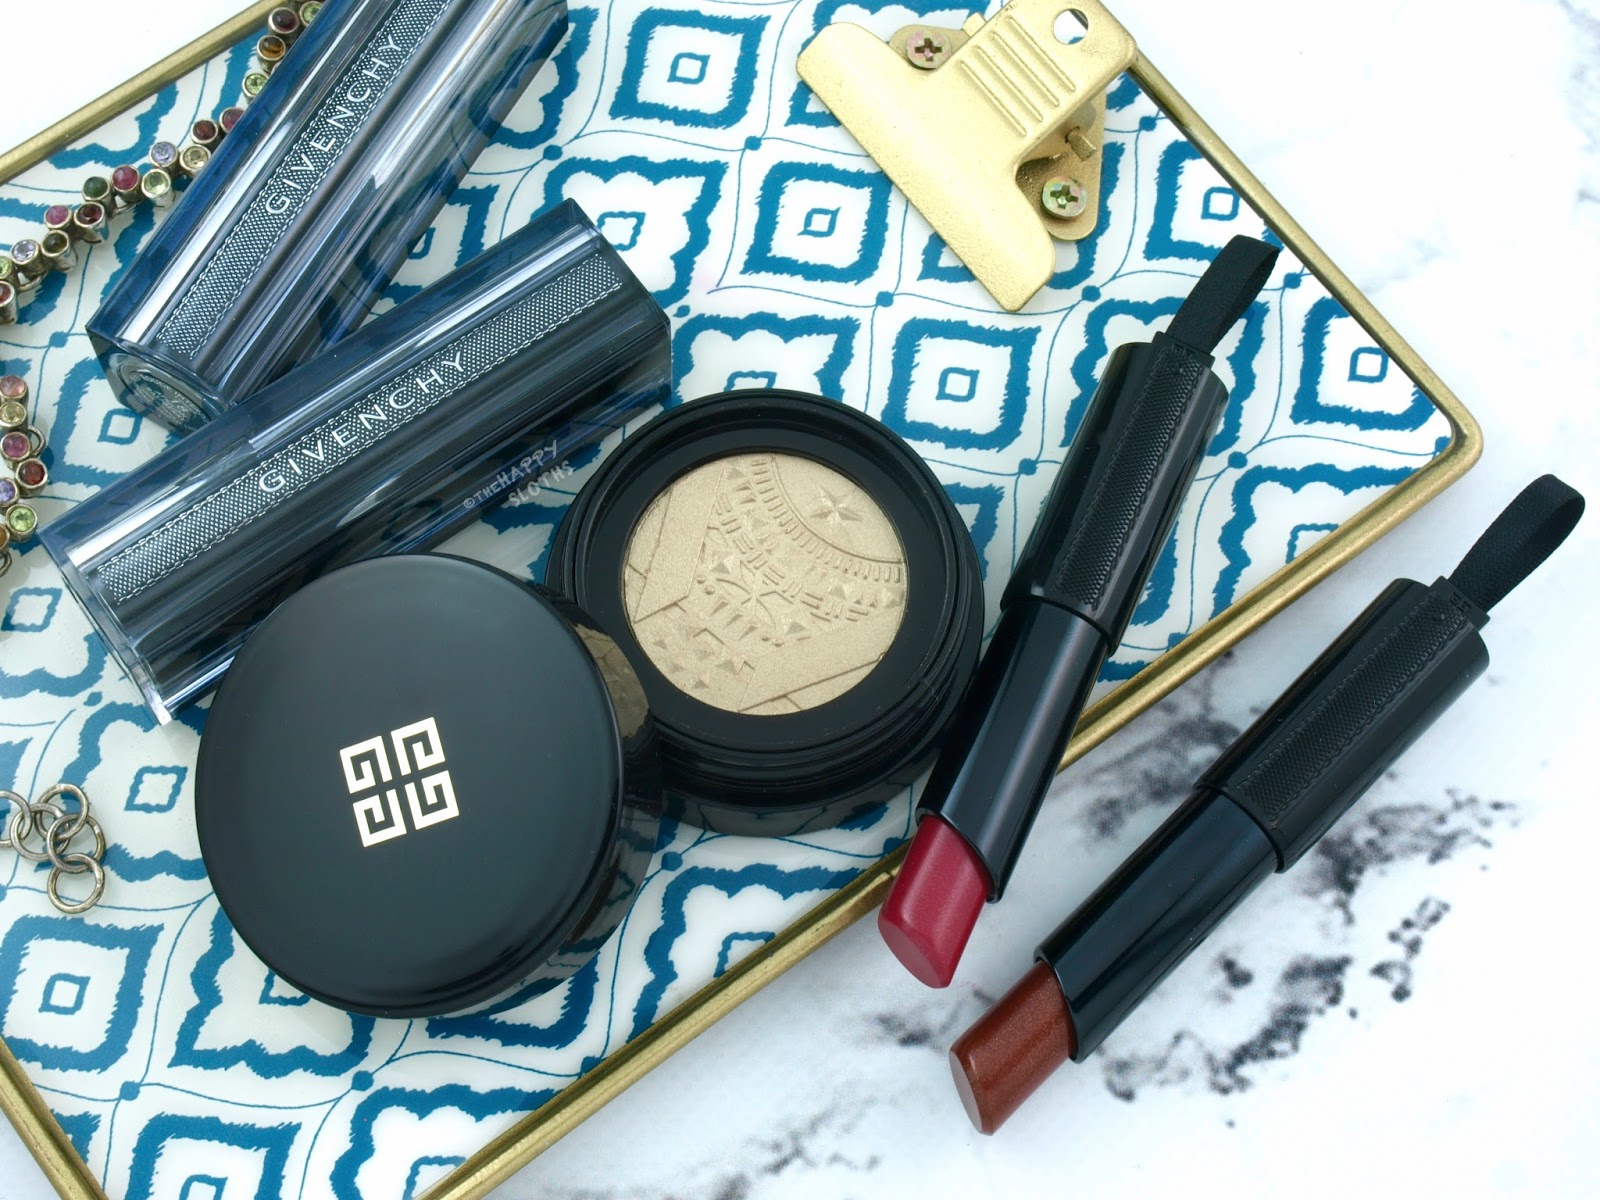 Givenchy | Les Saisons 2018 African Light Collection: Review and Swatches